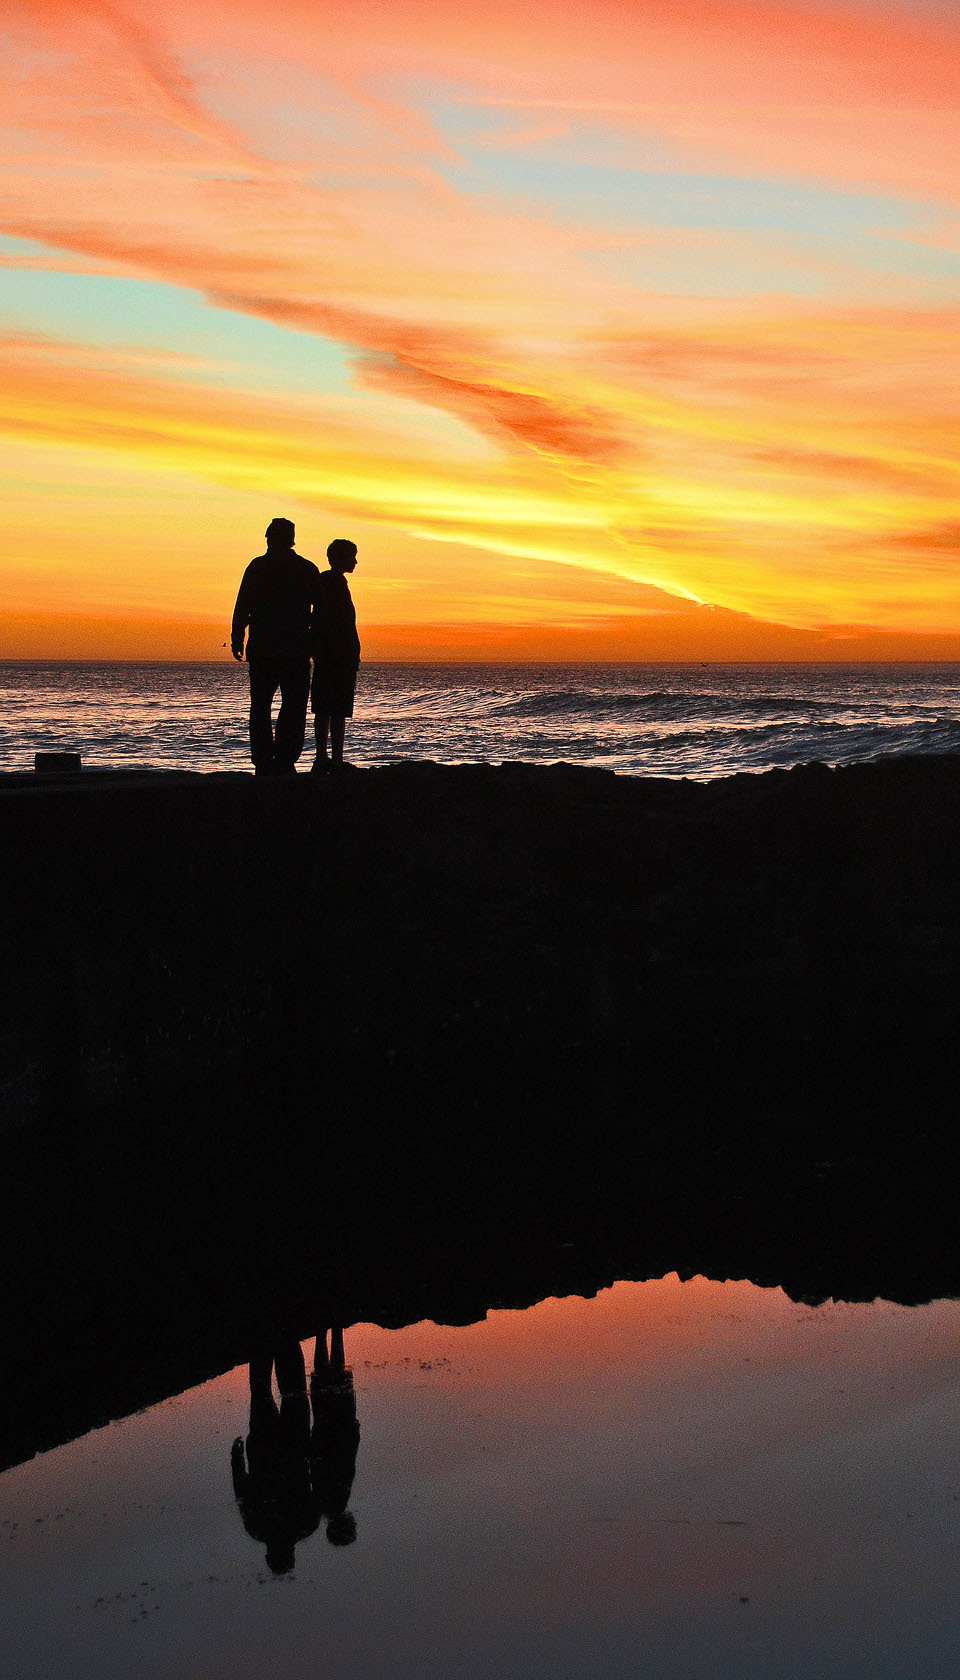 Sunset at Sutro Baths